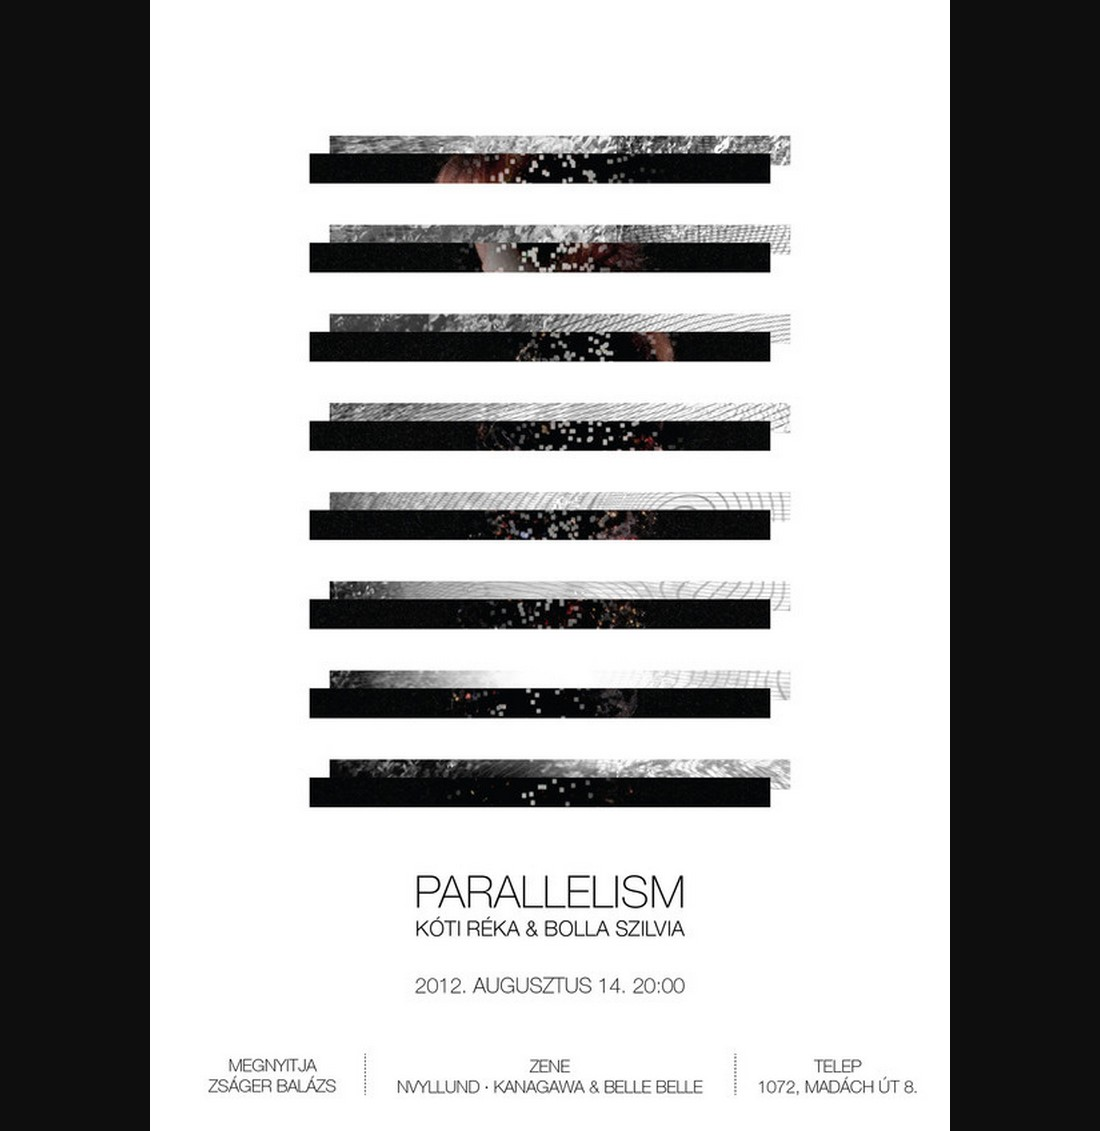 Parallelism poster